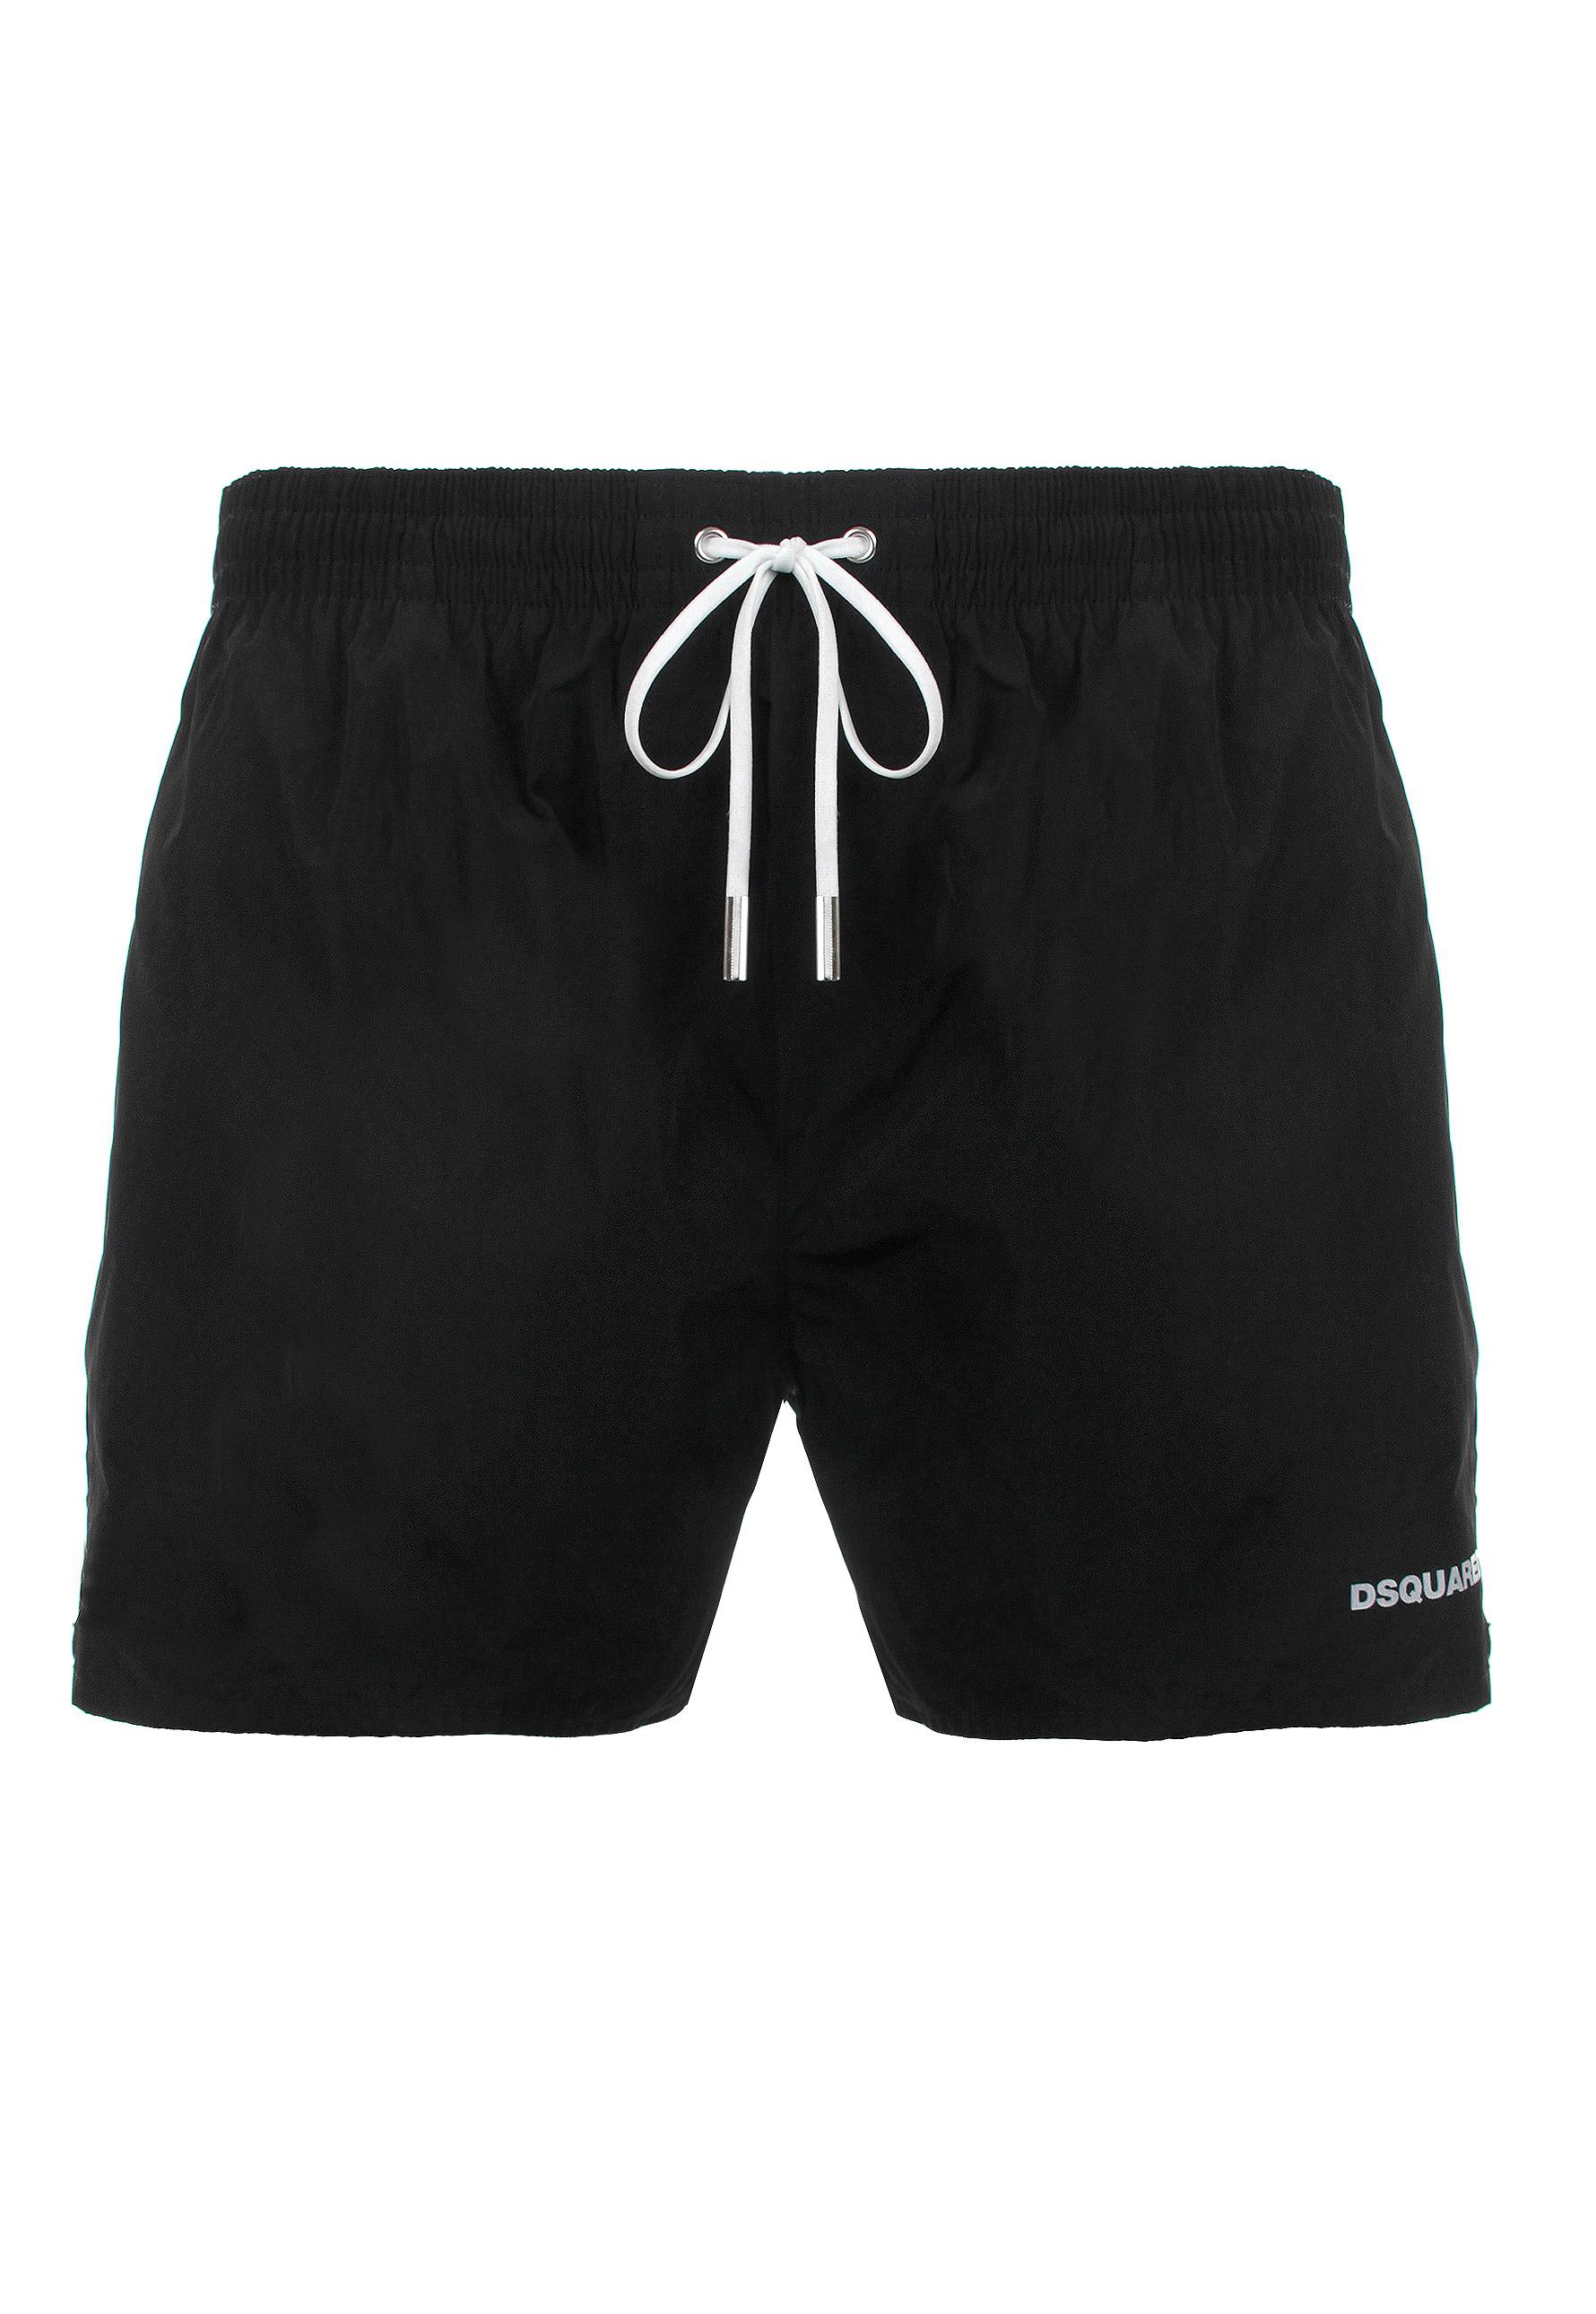 ICON print swimming trunks - Black Dsquared2 Clearance Cheap Real crPbSTwI